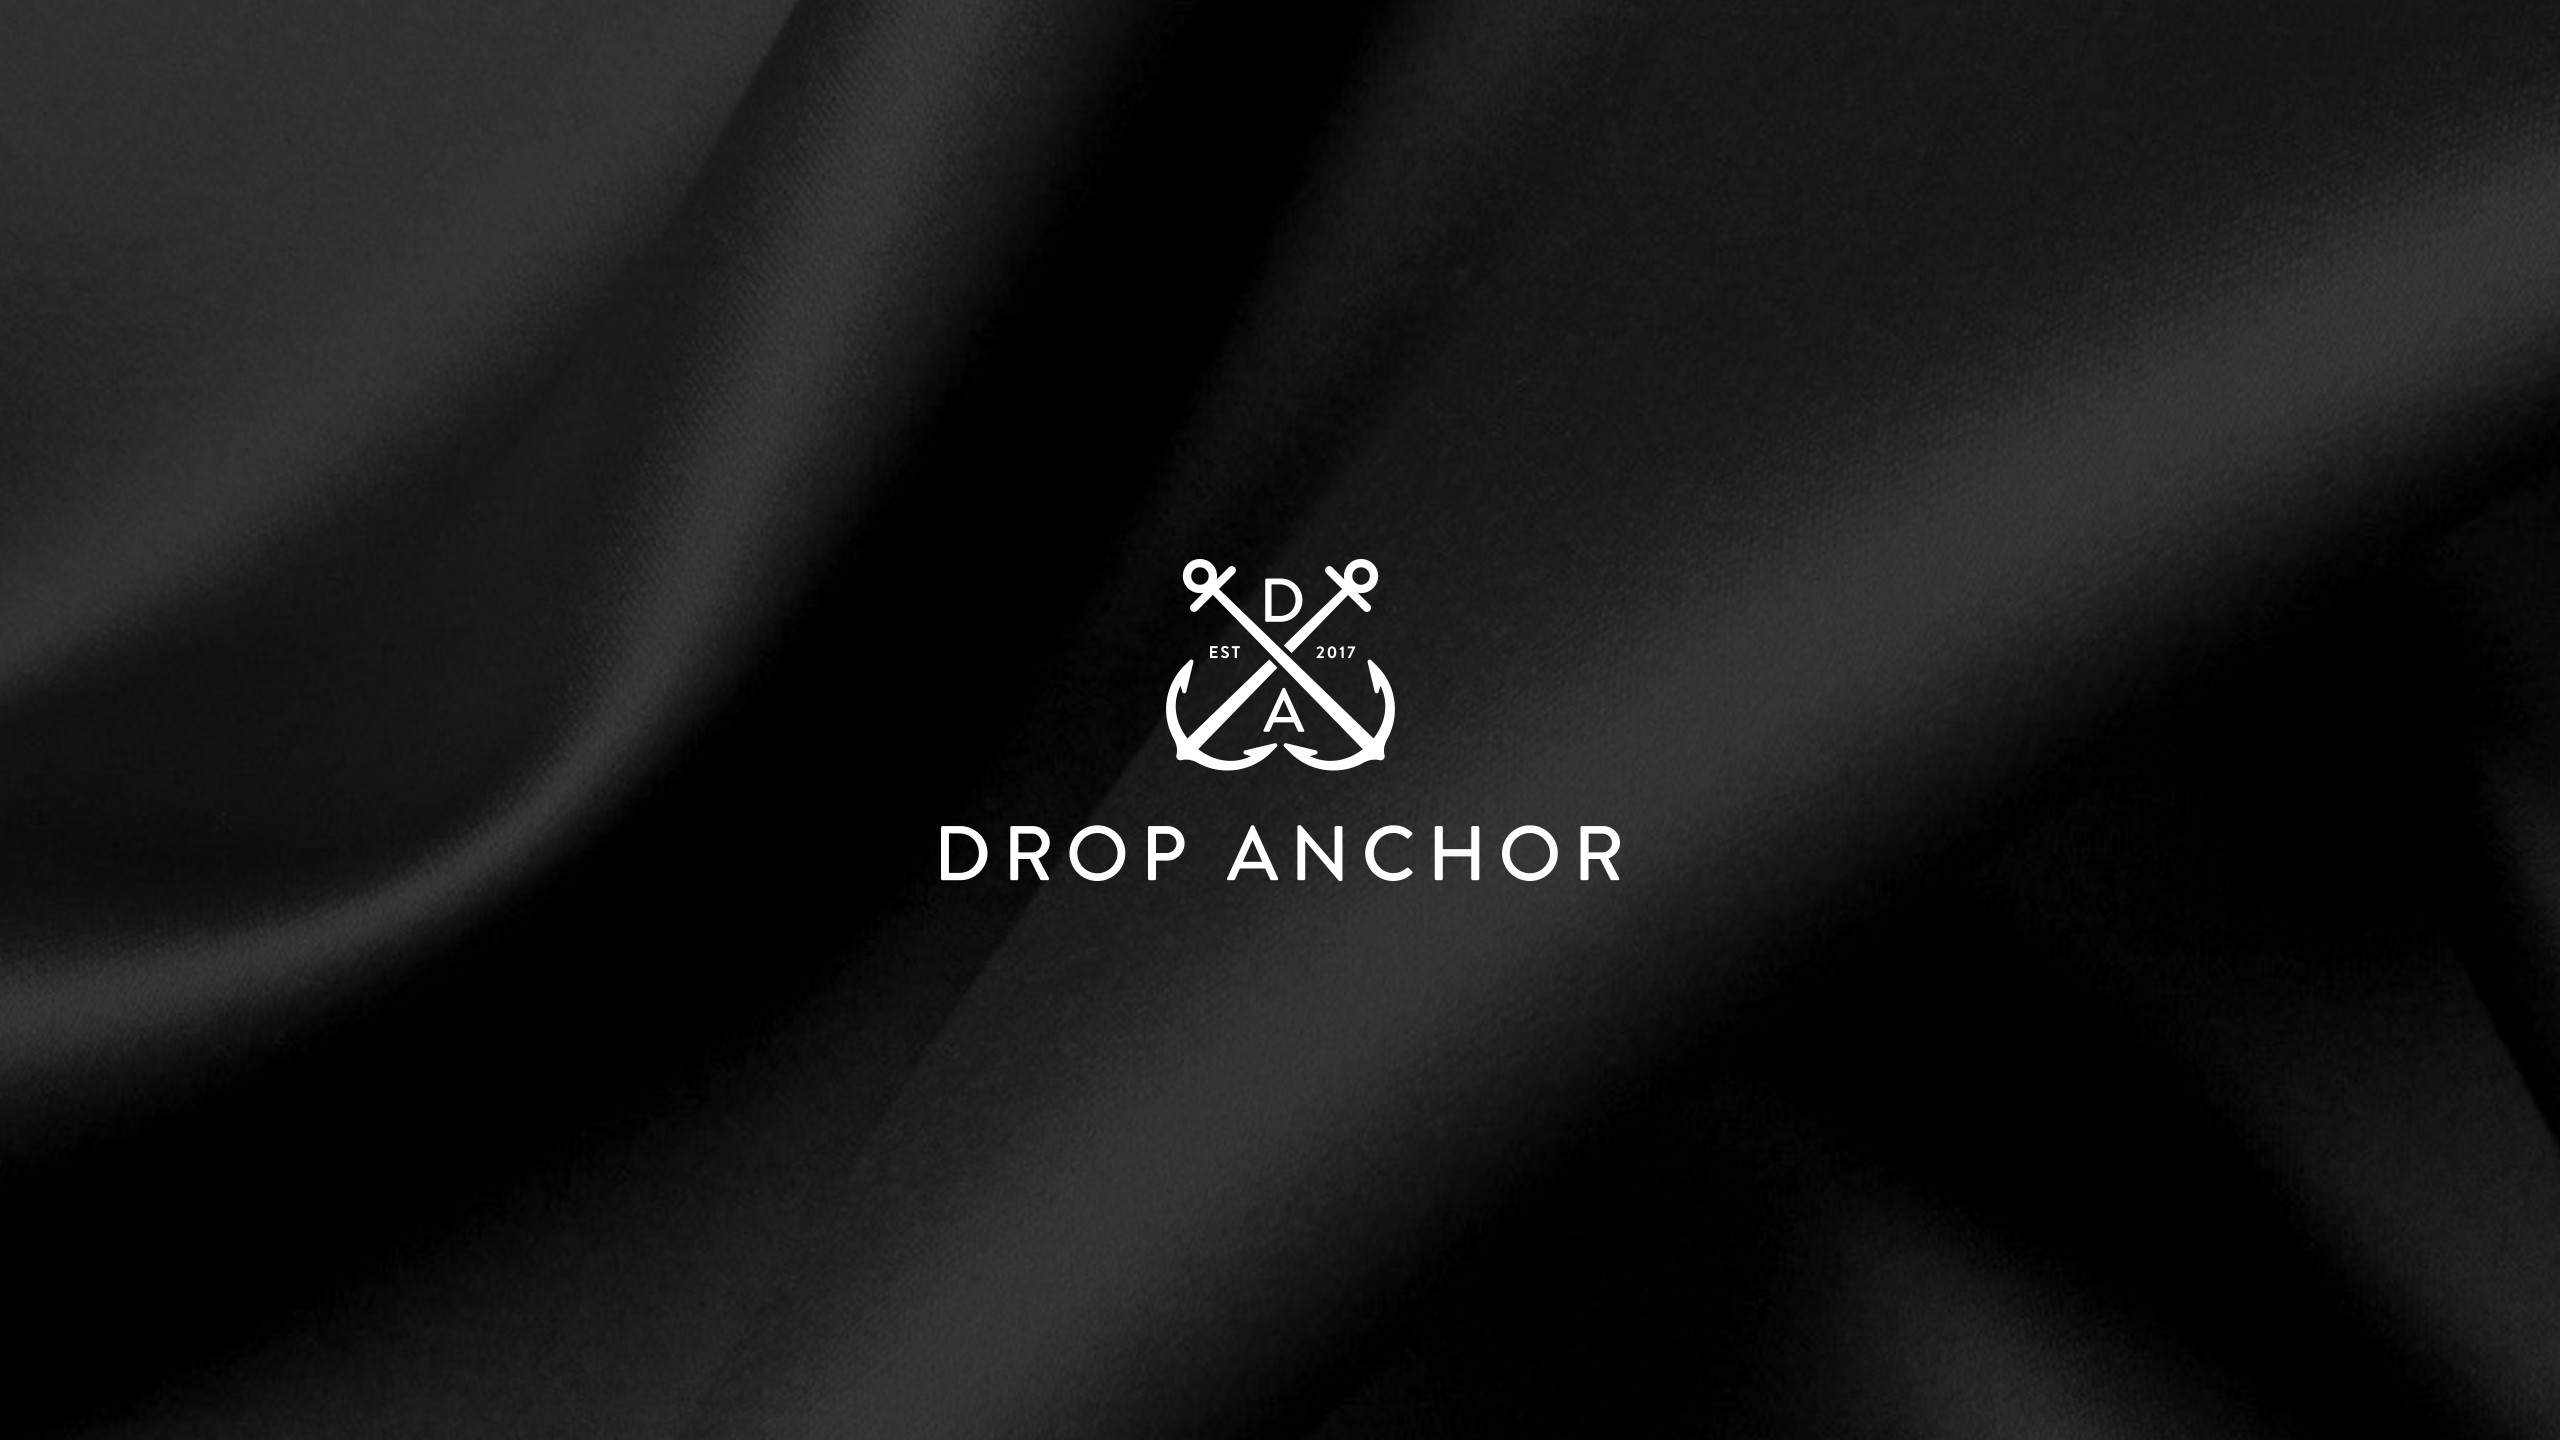 New luxurious clothing brand looking for an elegant, simplistic logo.